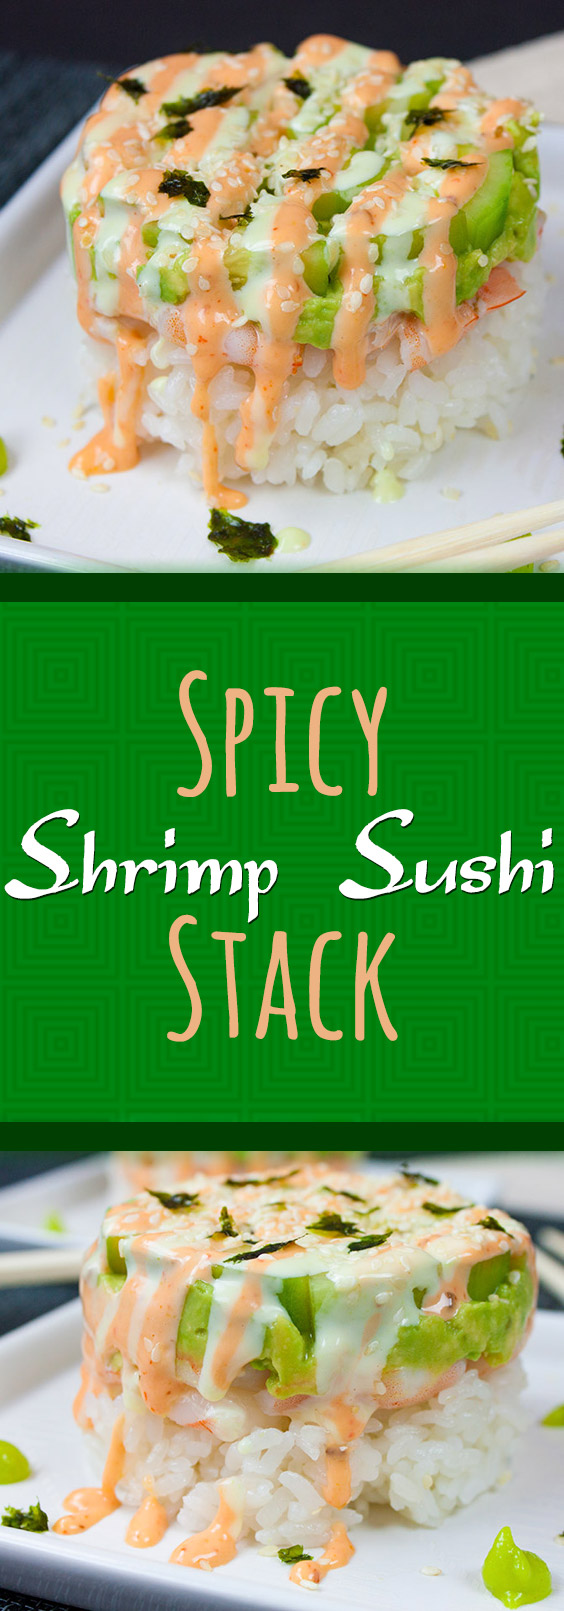 Spicy Shrimp Sushi Stack - The sauces take this sushi to another level! So easy to satisfy your sushi craving at home!